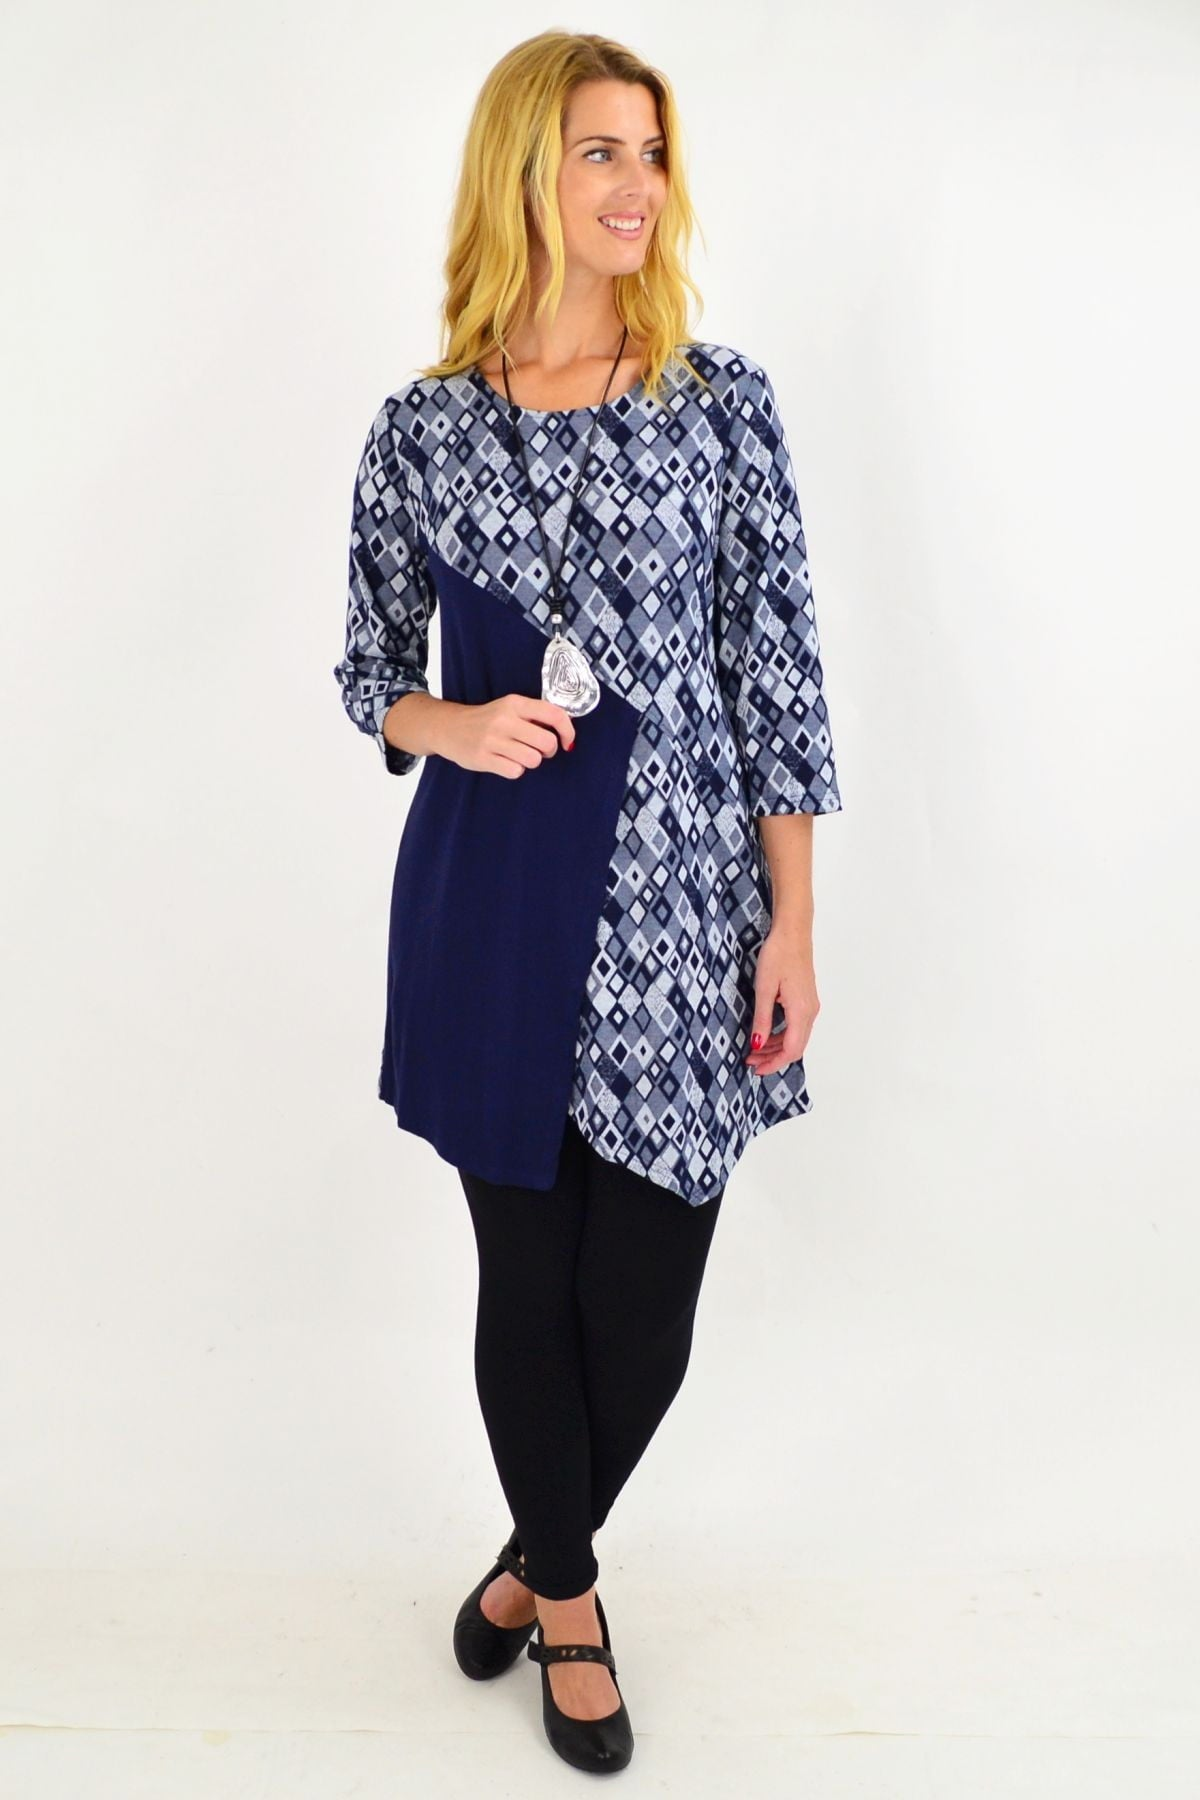 Blue Diamond Tunic Top by Whispers | I Love Tunics | Tunic Tops | Tunic | Tunic Dresses  | womens clothing online